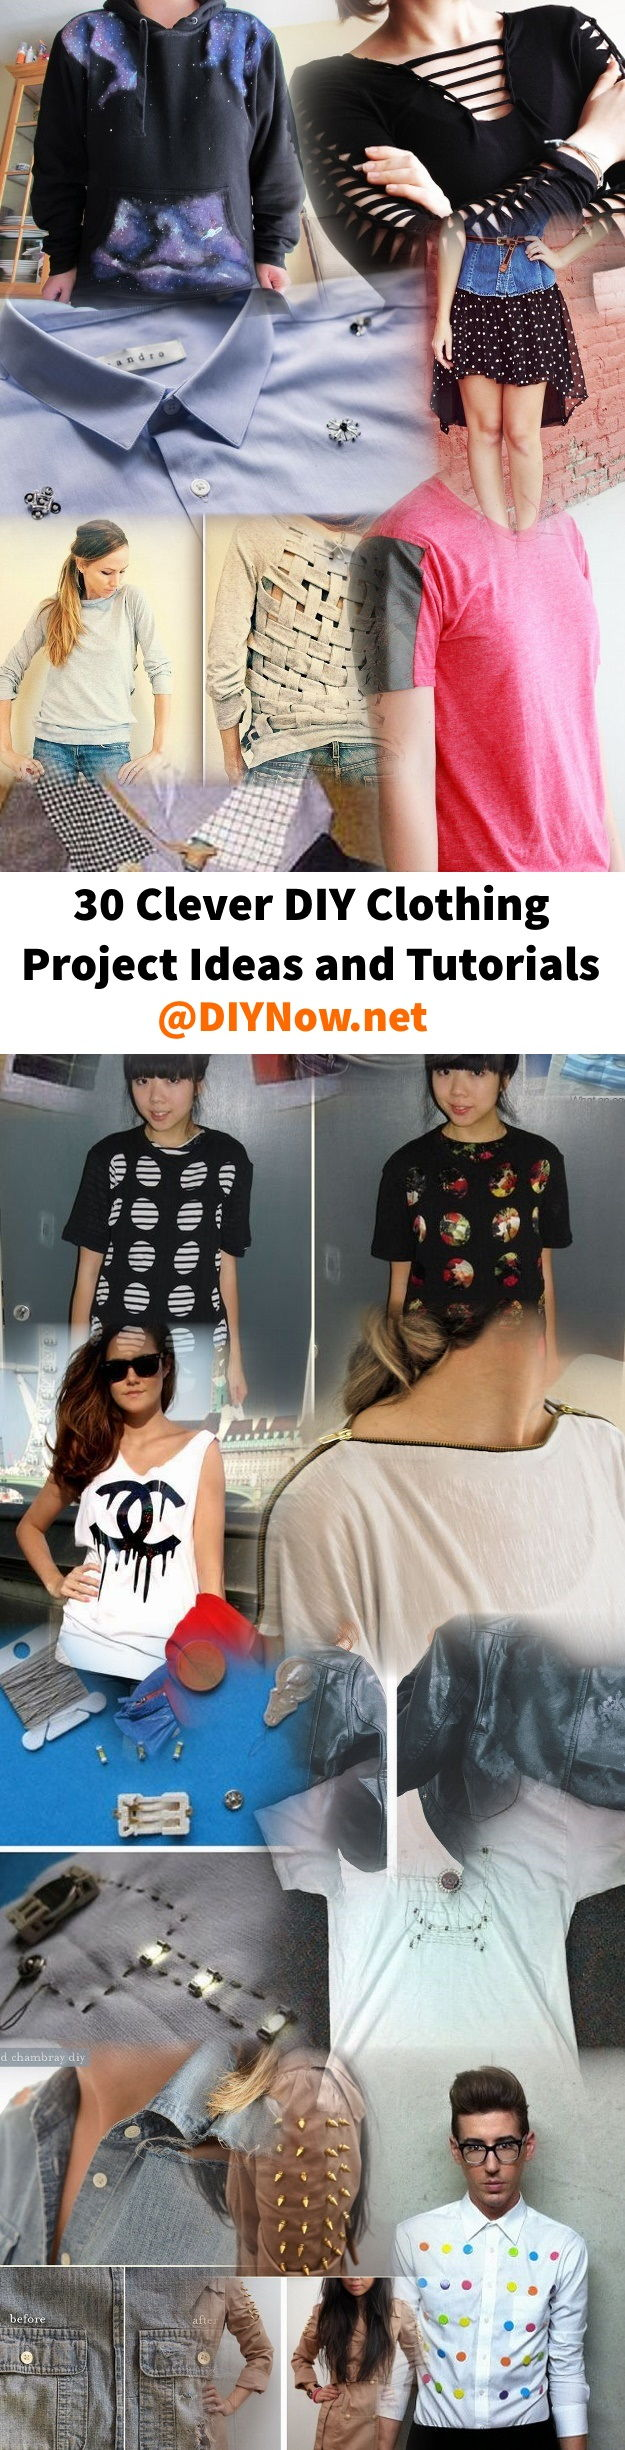 30 Clever DIY Clothing Project Ideas and Tutorials